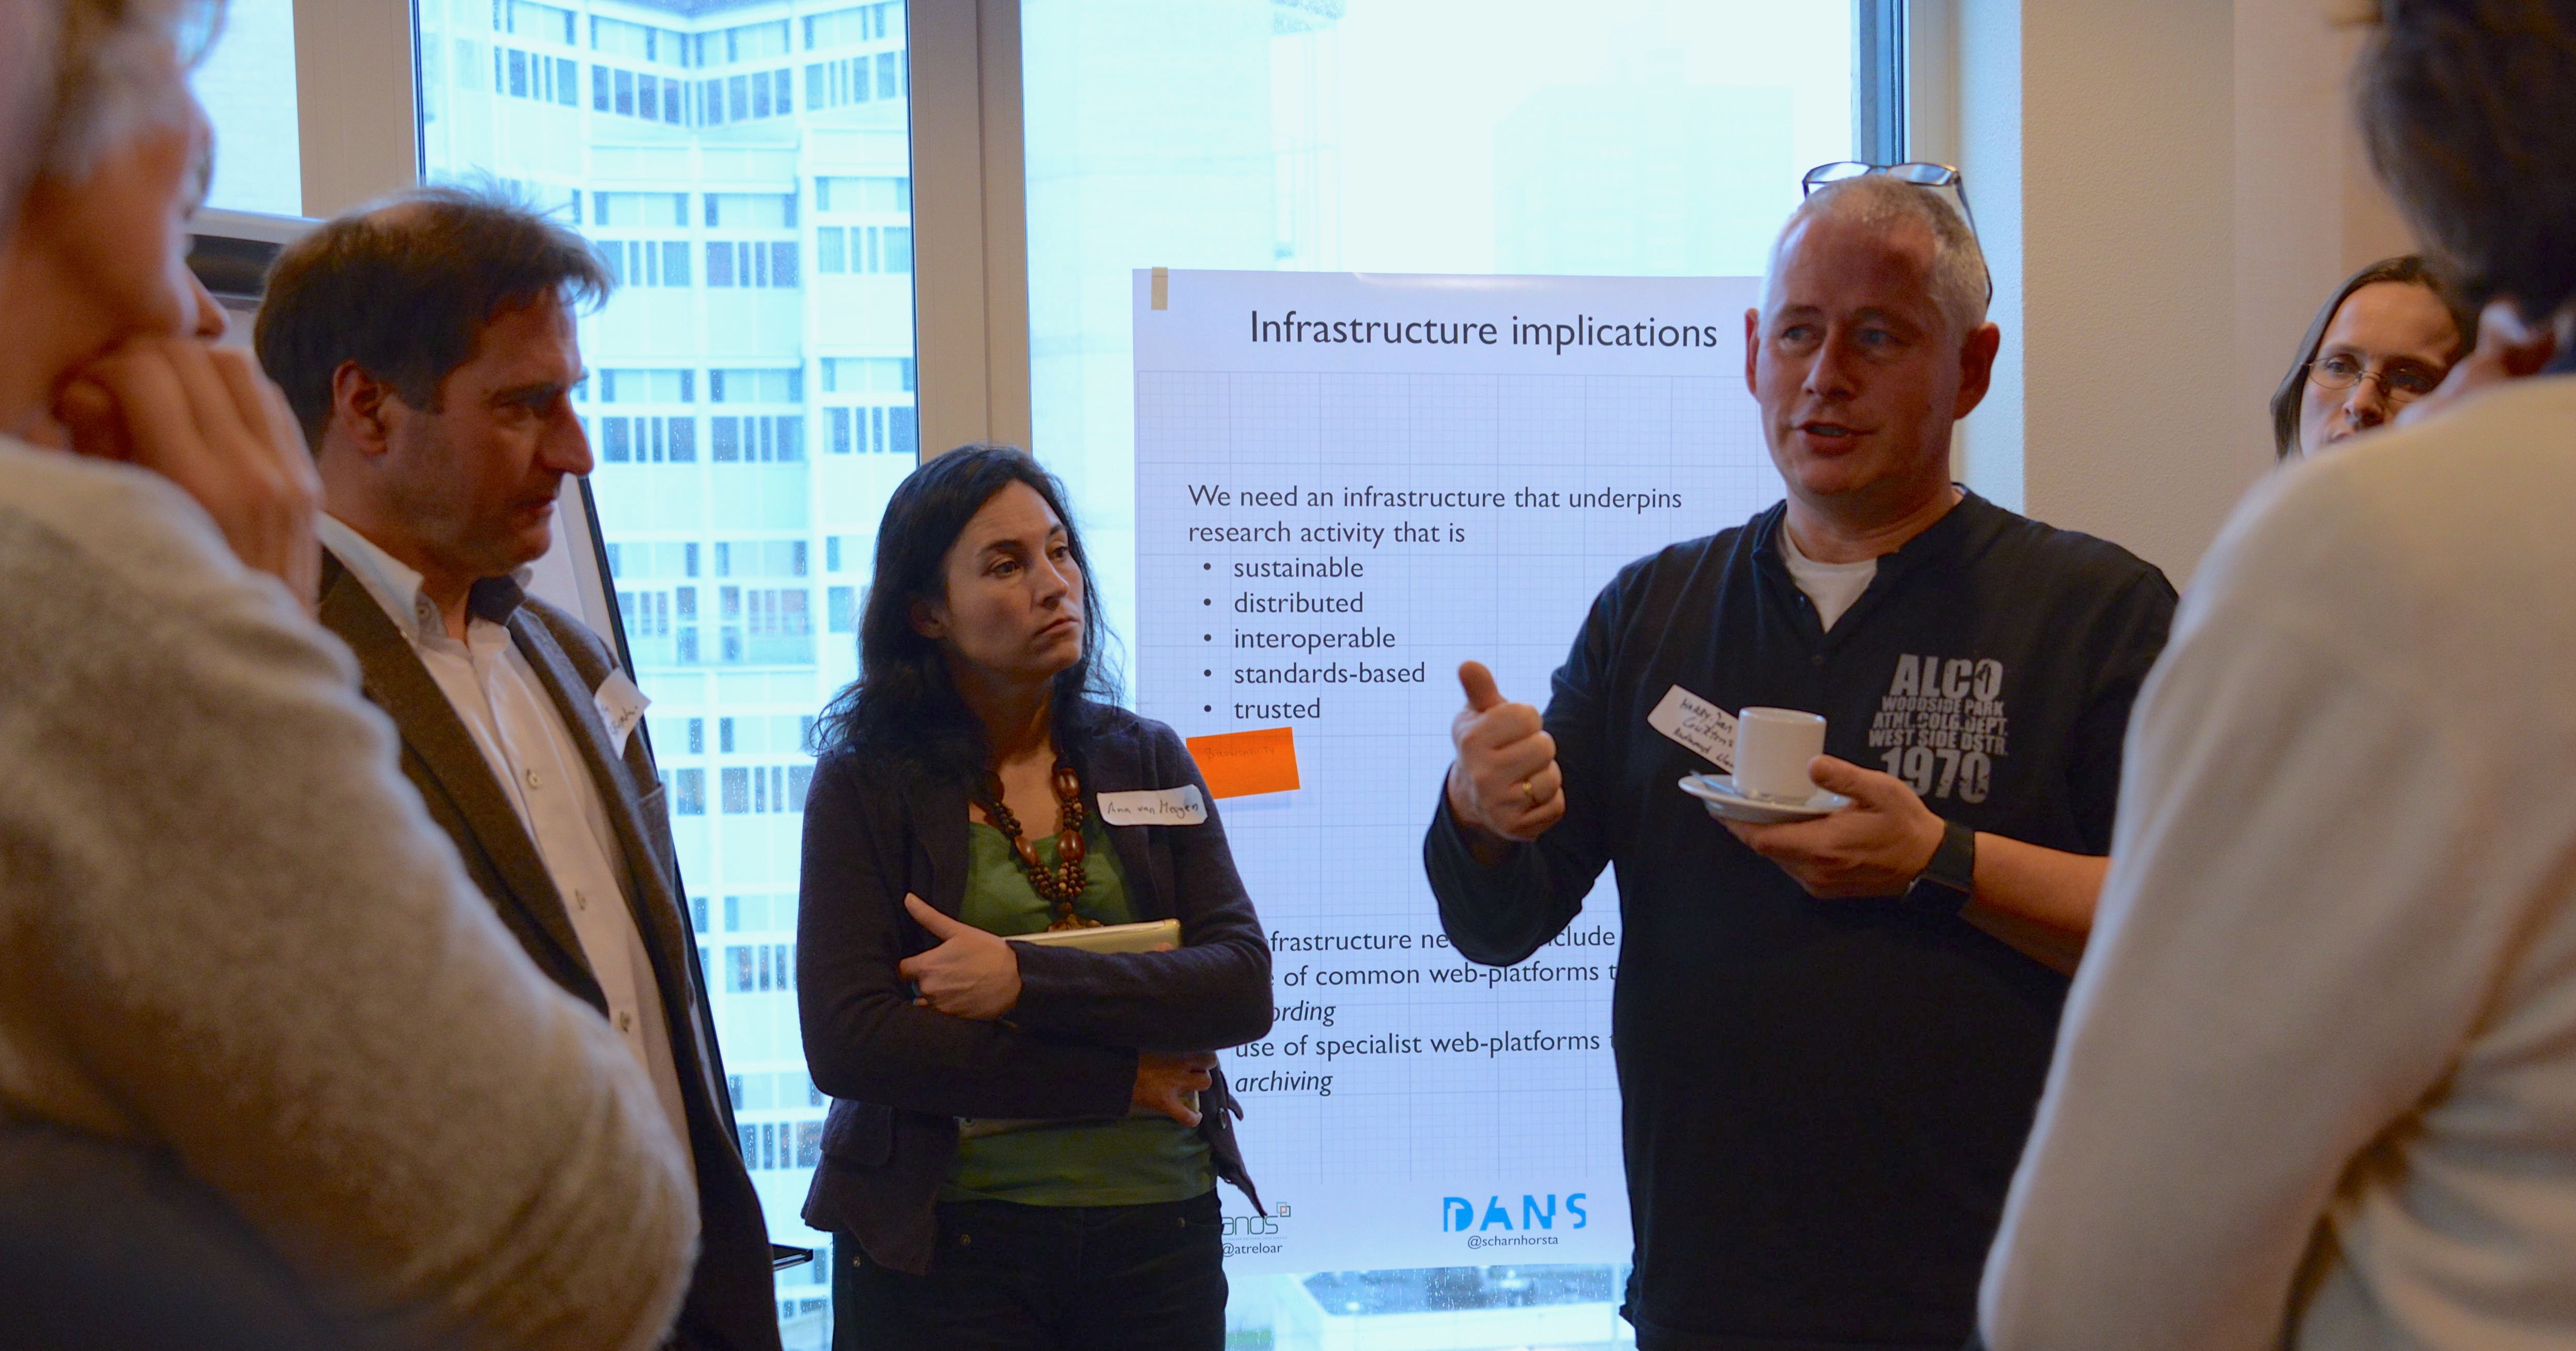 Breakout discussions about infrastructure implications